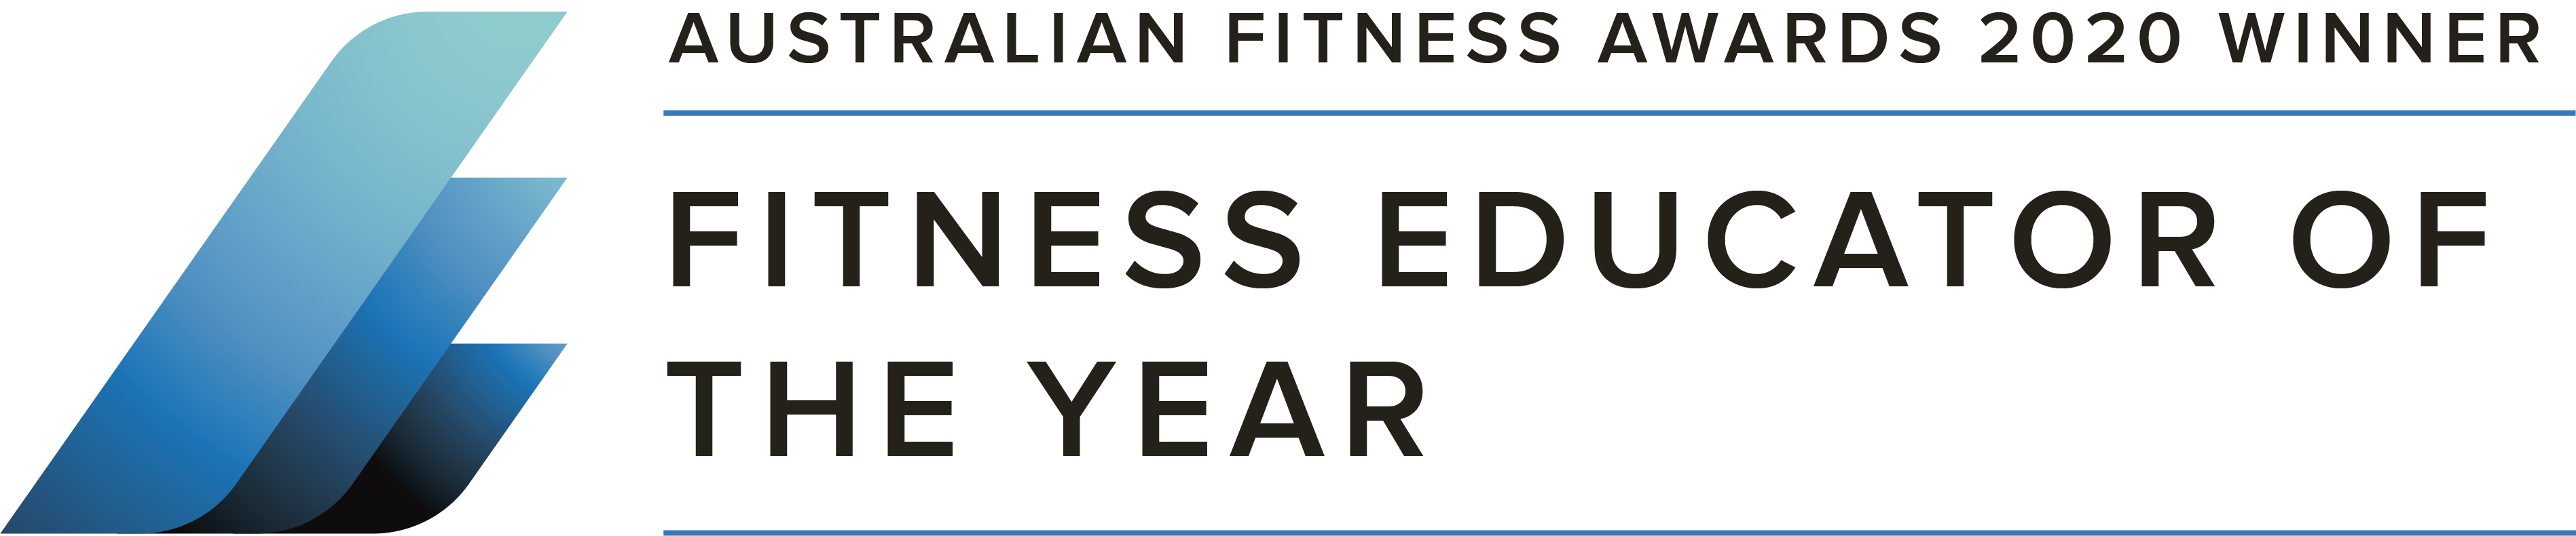 Fitness Educator Winner Of The Year